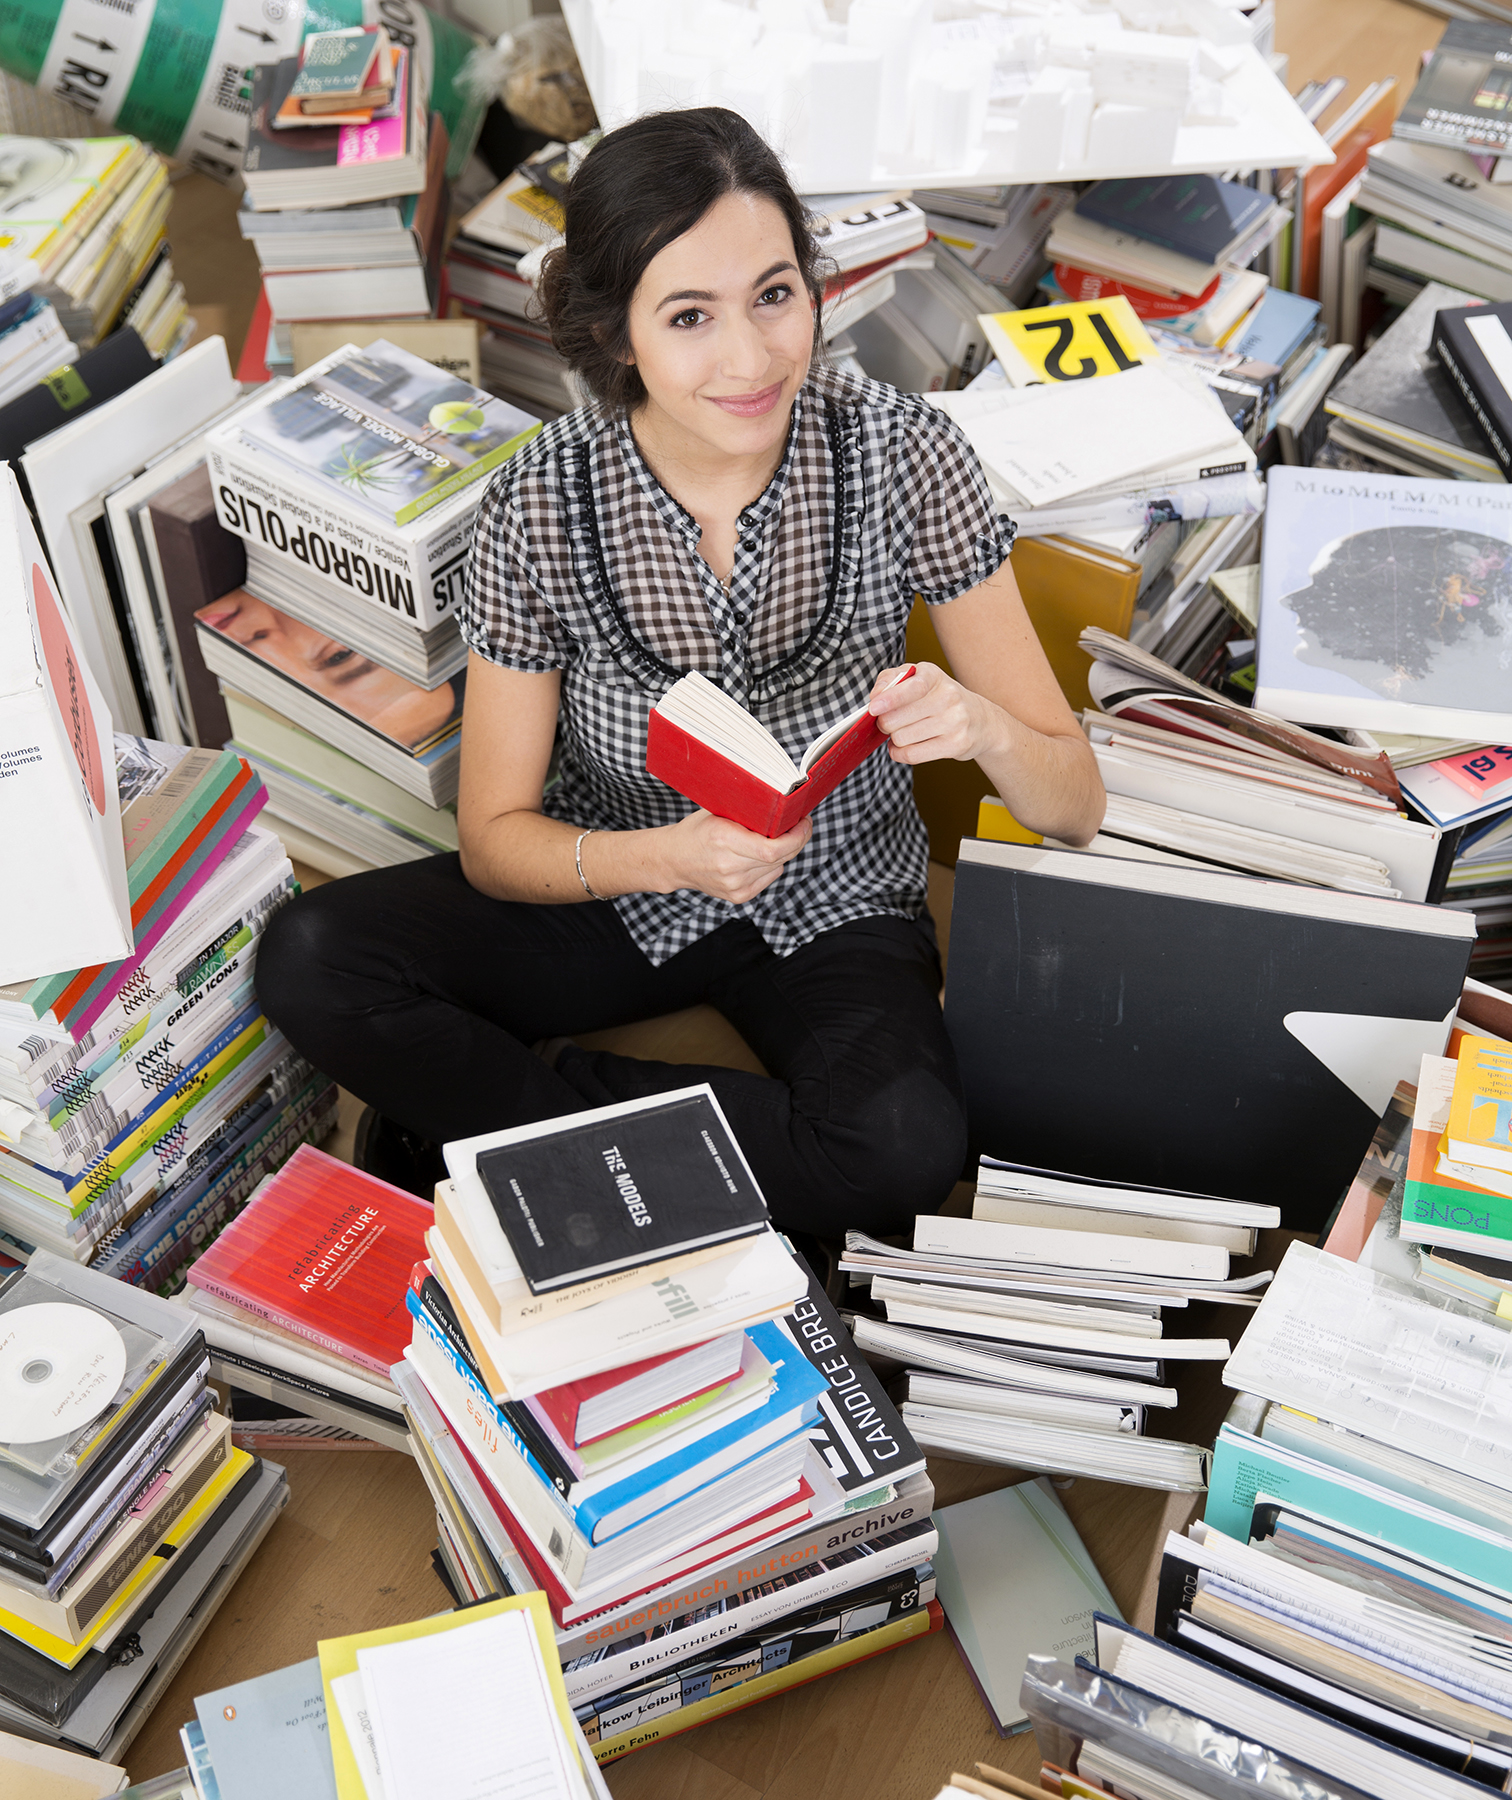 Woman buried in books